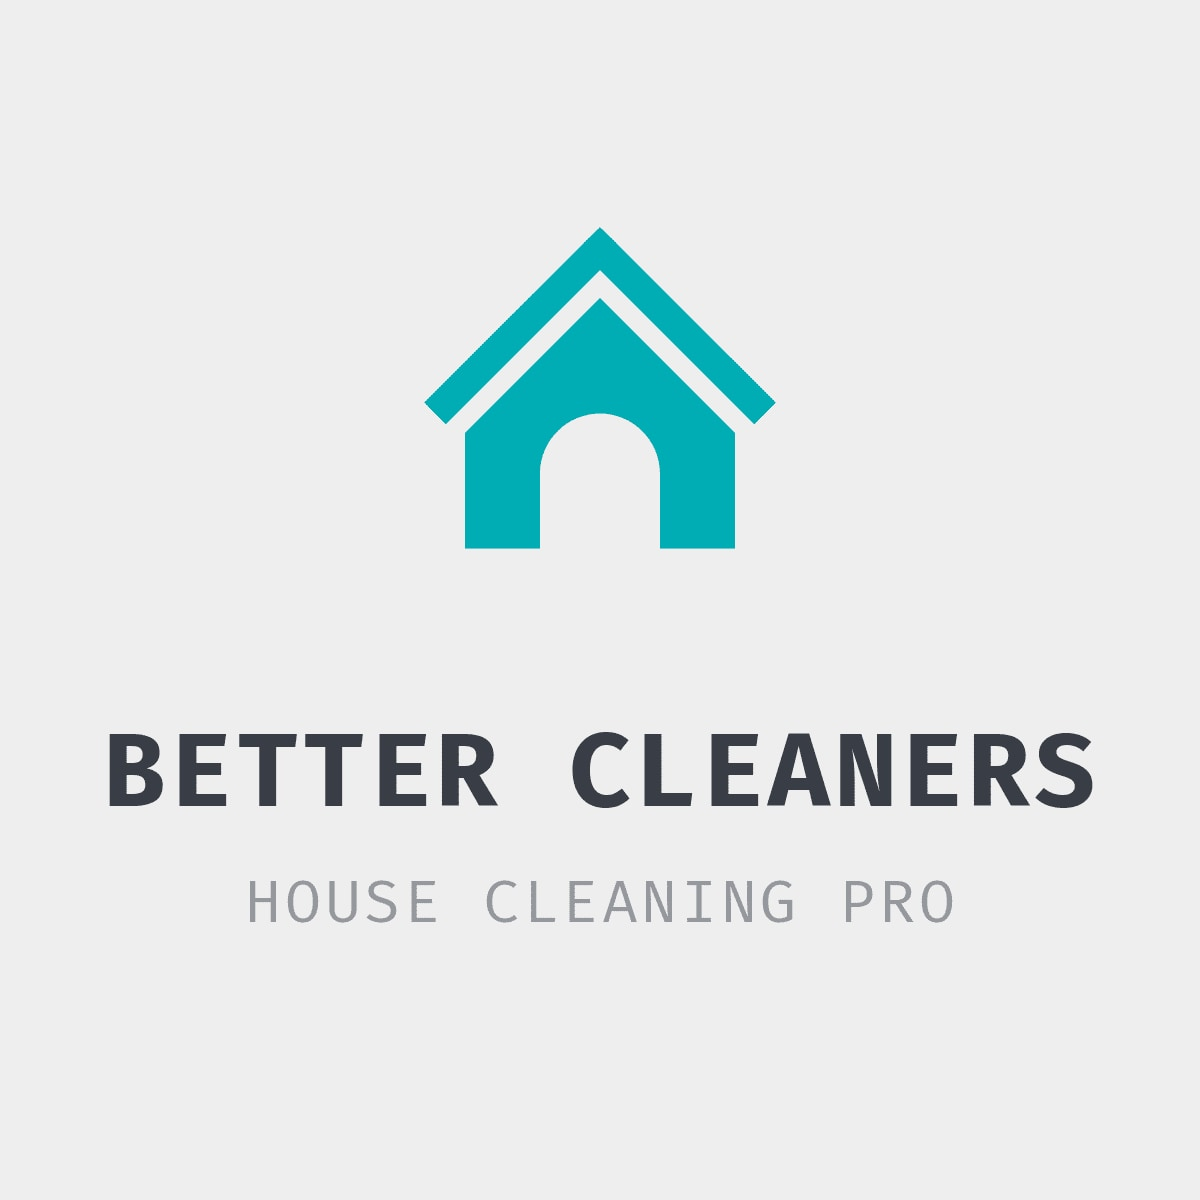 Better Cleaners